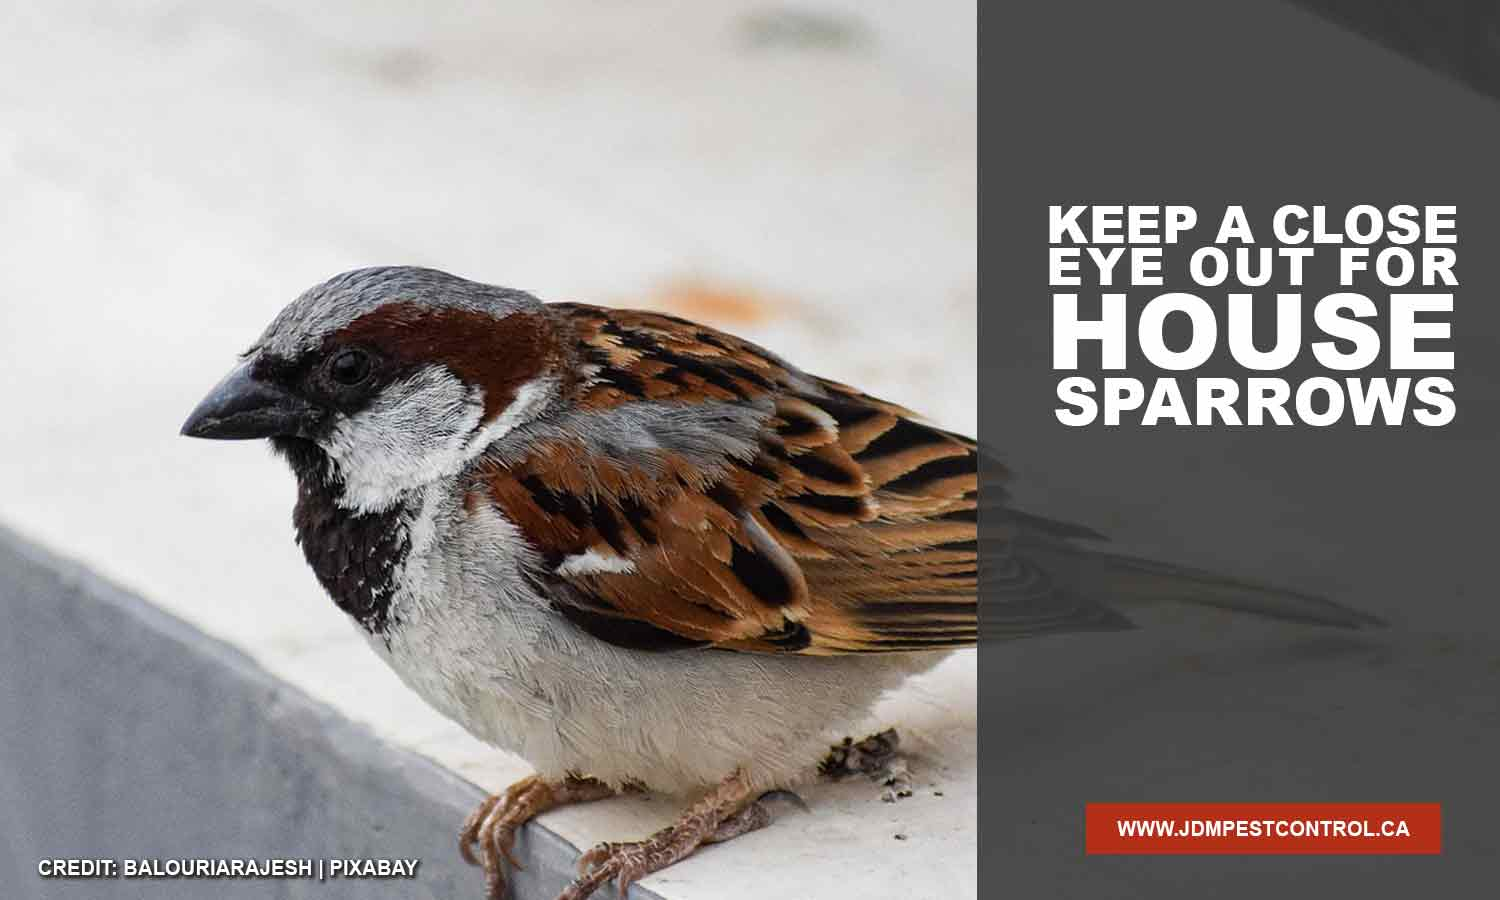 Keep a close eye out for house sparrows